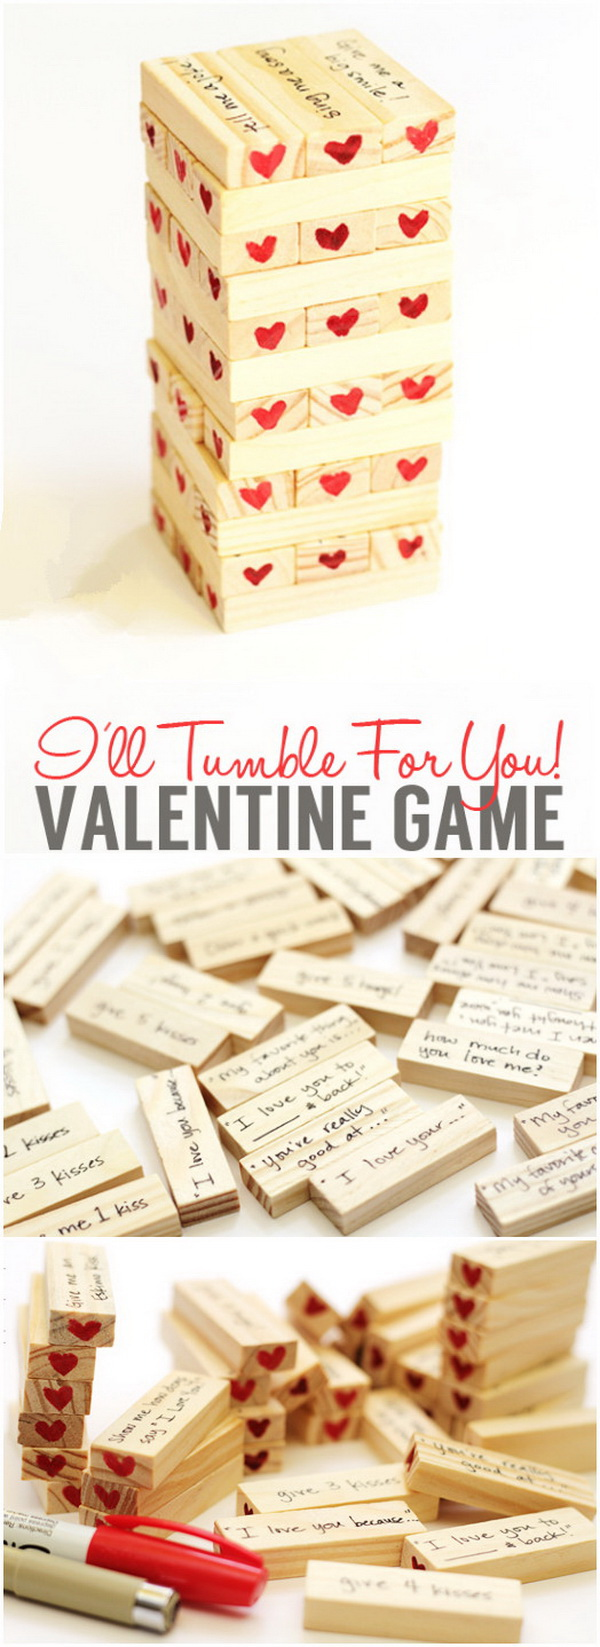 Valentine's Day Hearty Tumble Game. Another fun gift idea for your Valentine's Day!